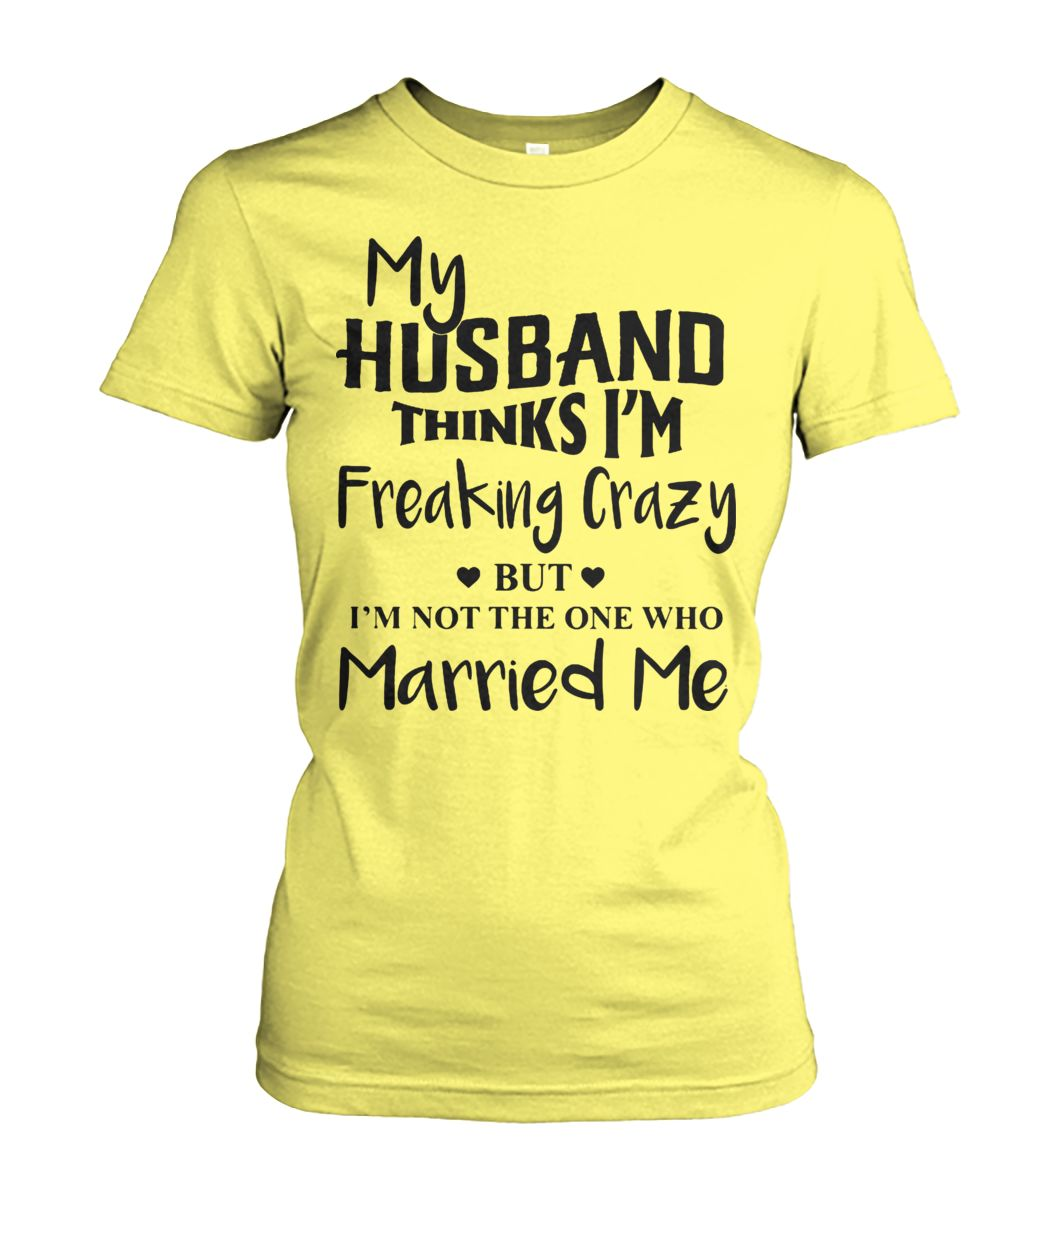 My husband thinks I'm freaking crazy but I'm not the one who married me women's crew tee